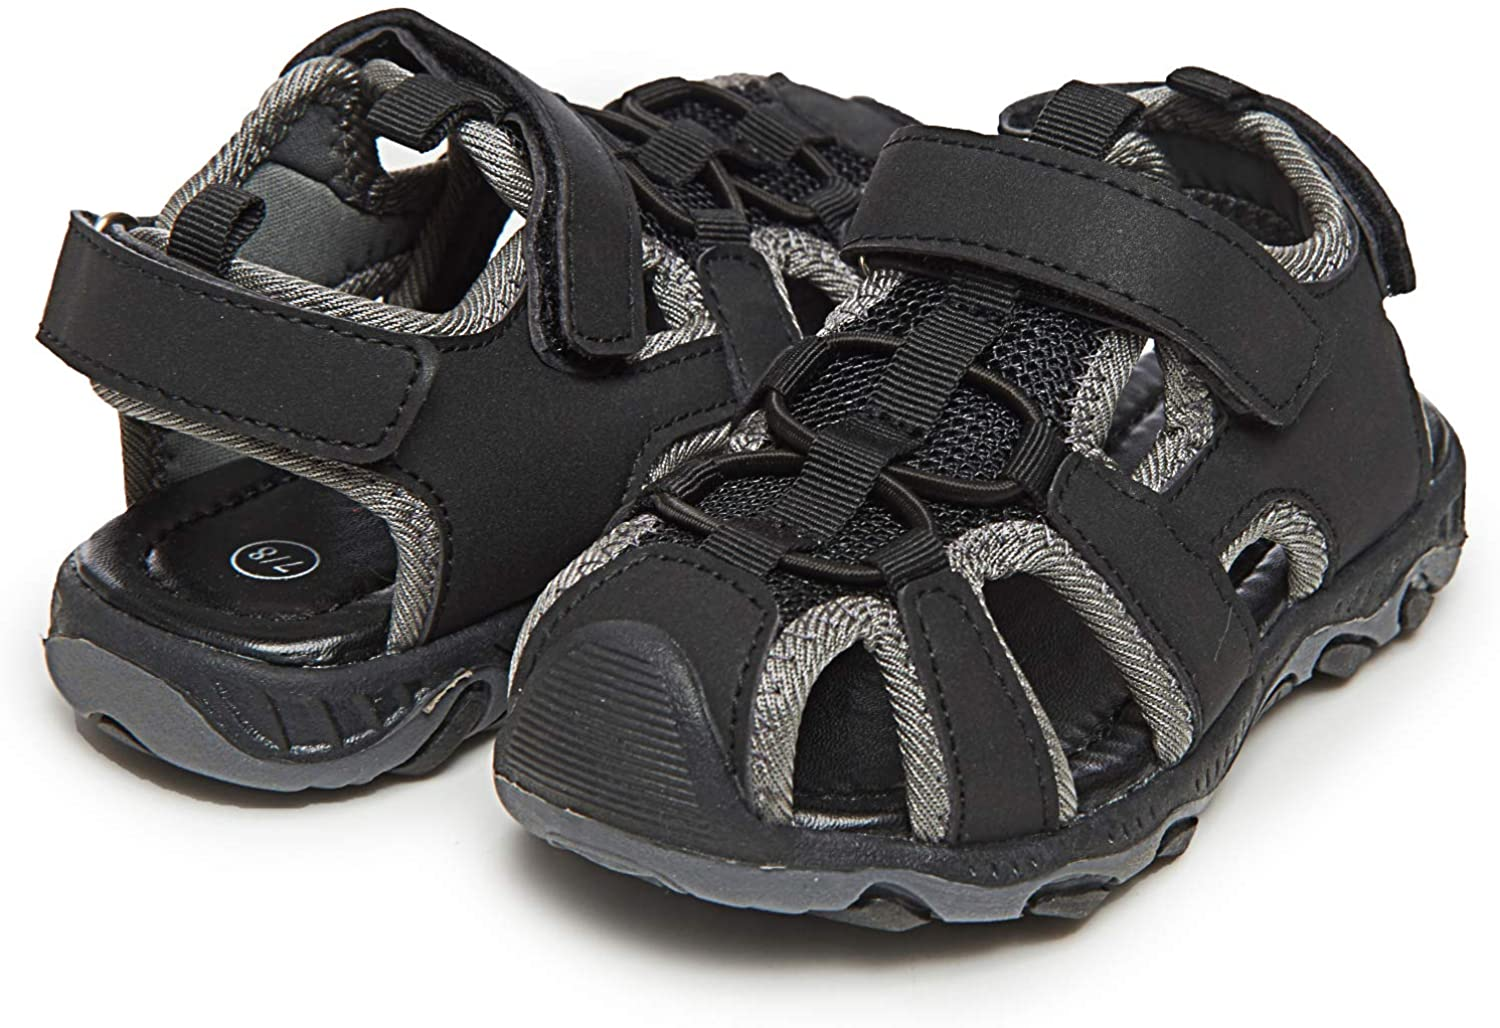 Skysole Boy's Athletic Fisherman Sandals | Closed-Toe, Mesh, Adjustable Strap, Kid's Shoes